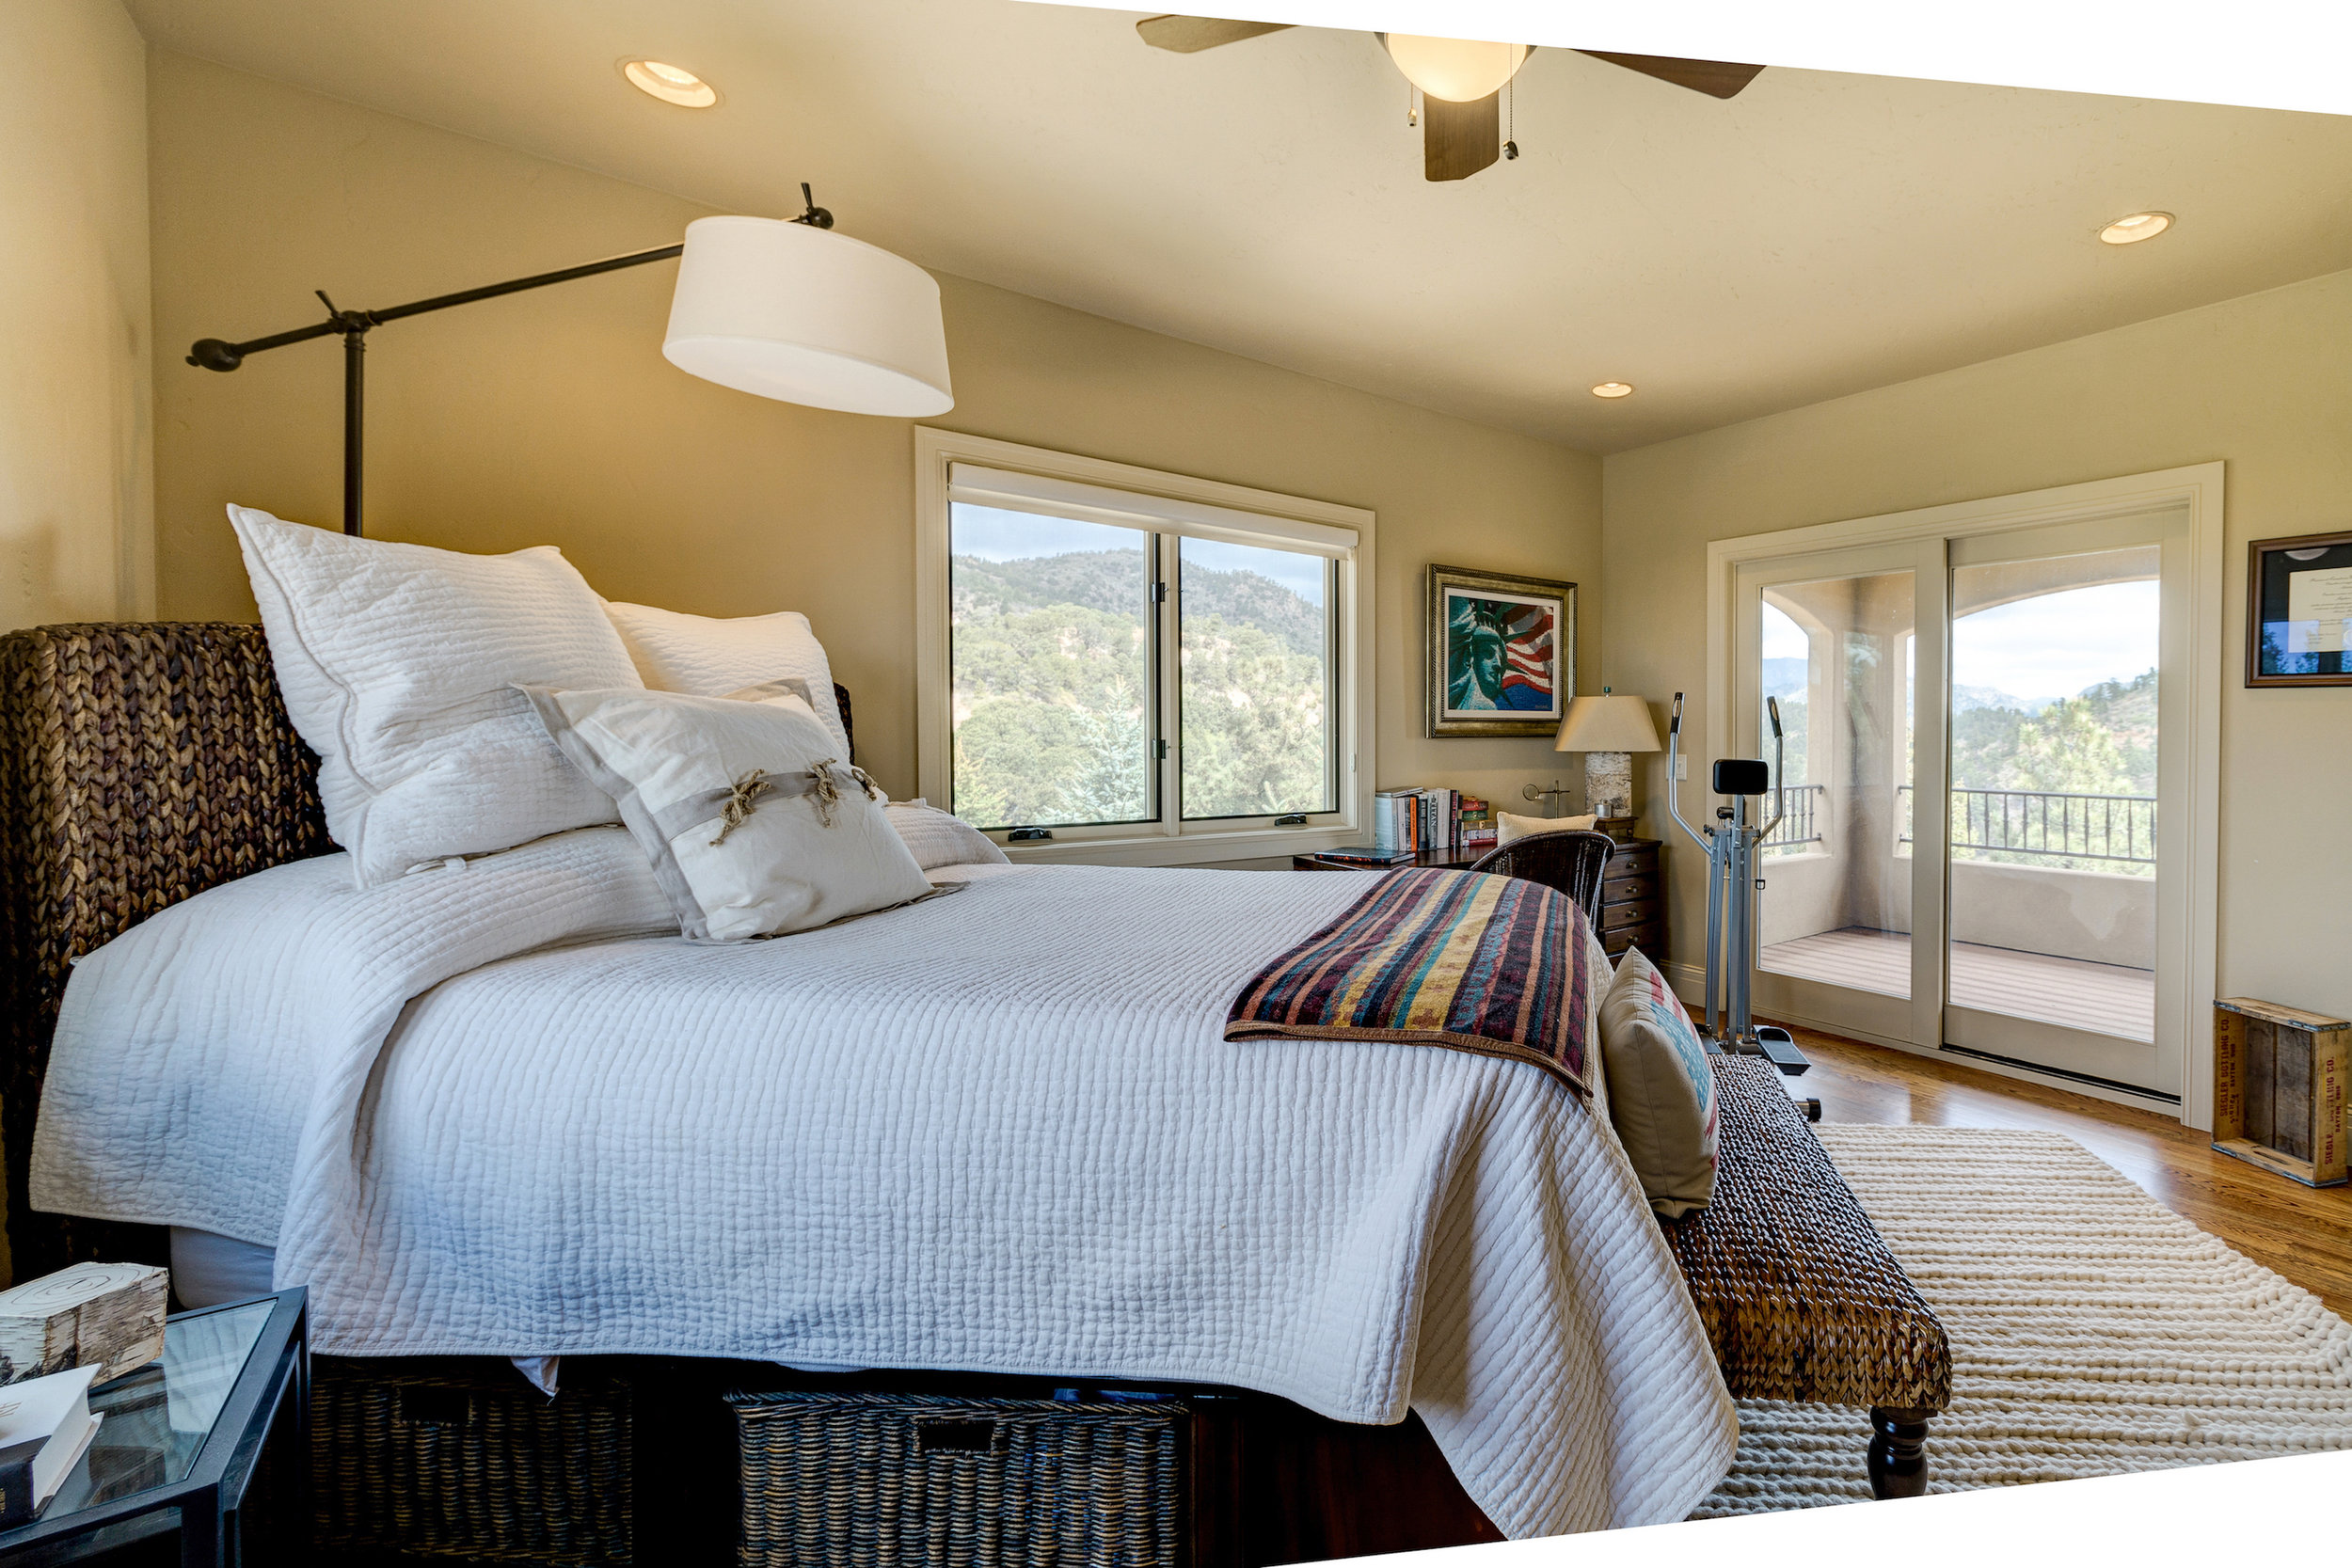 14-One of two guest rooms in guest wing.jpg